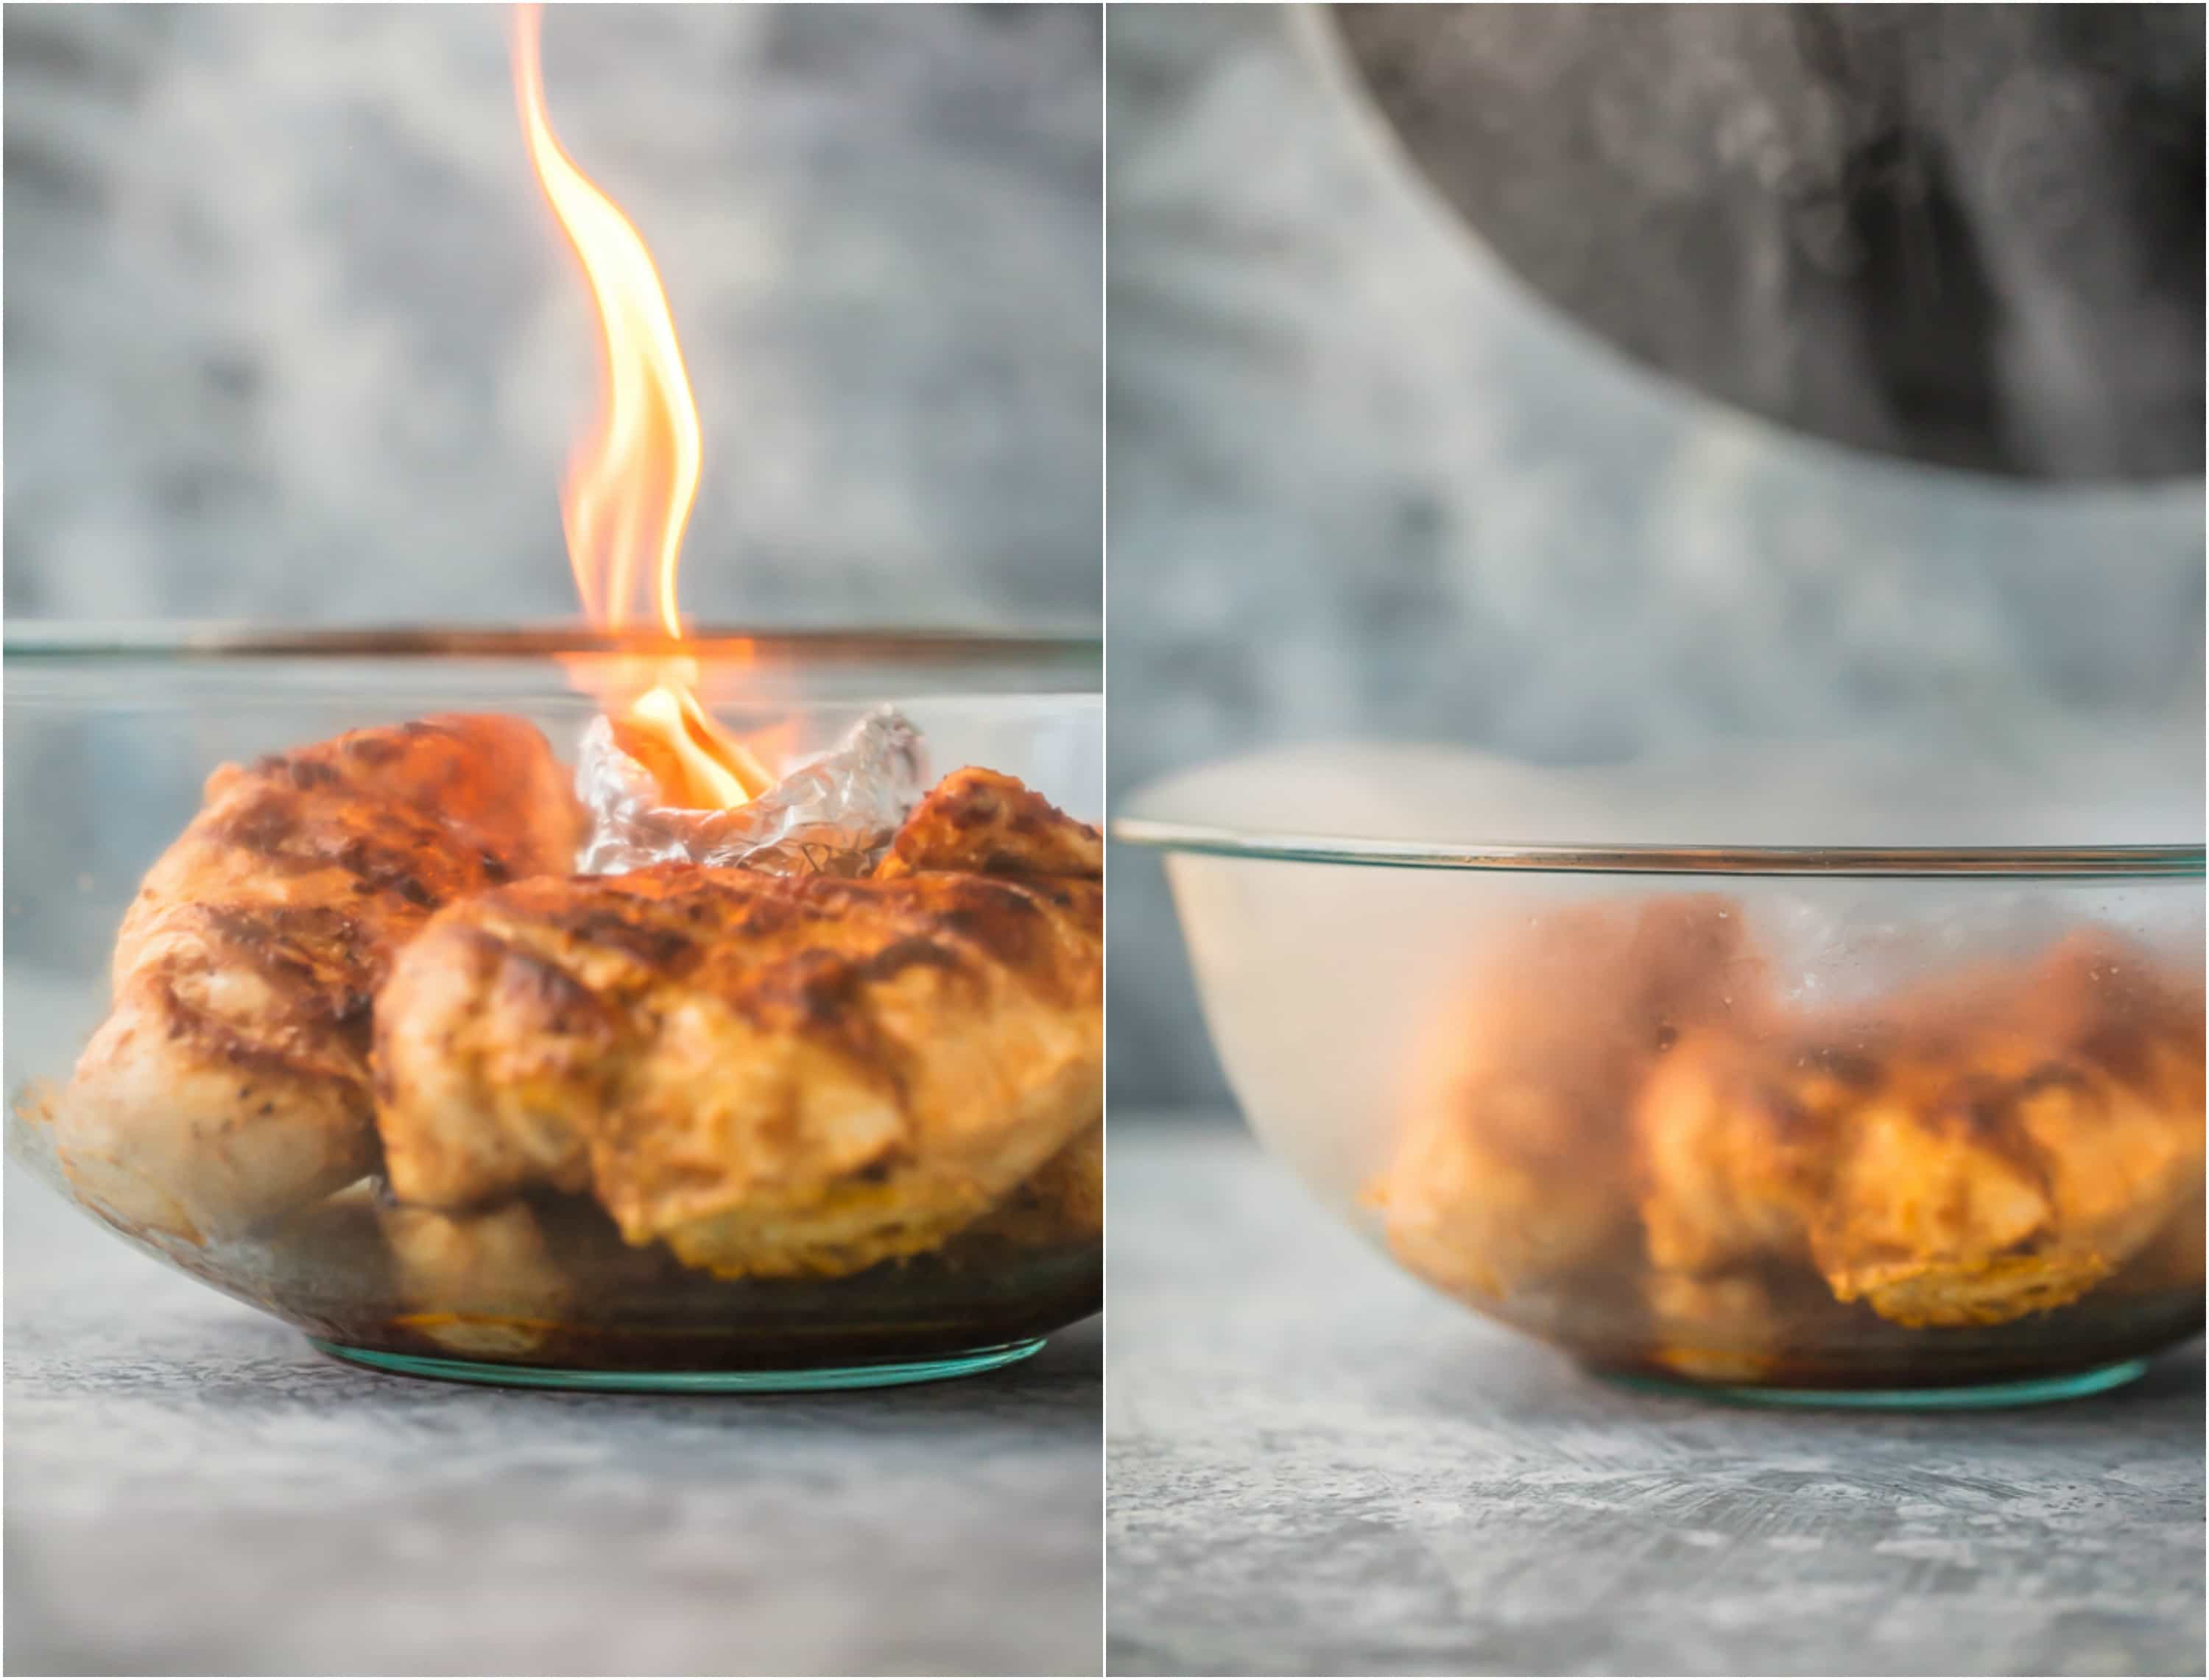 Tandoori Chicken in a bowl with fire